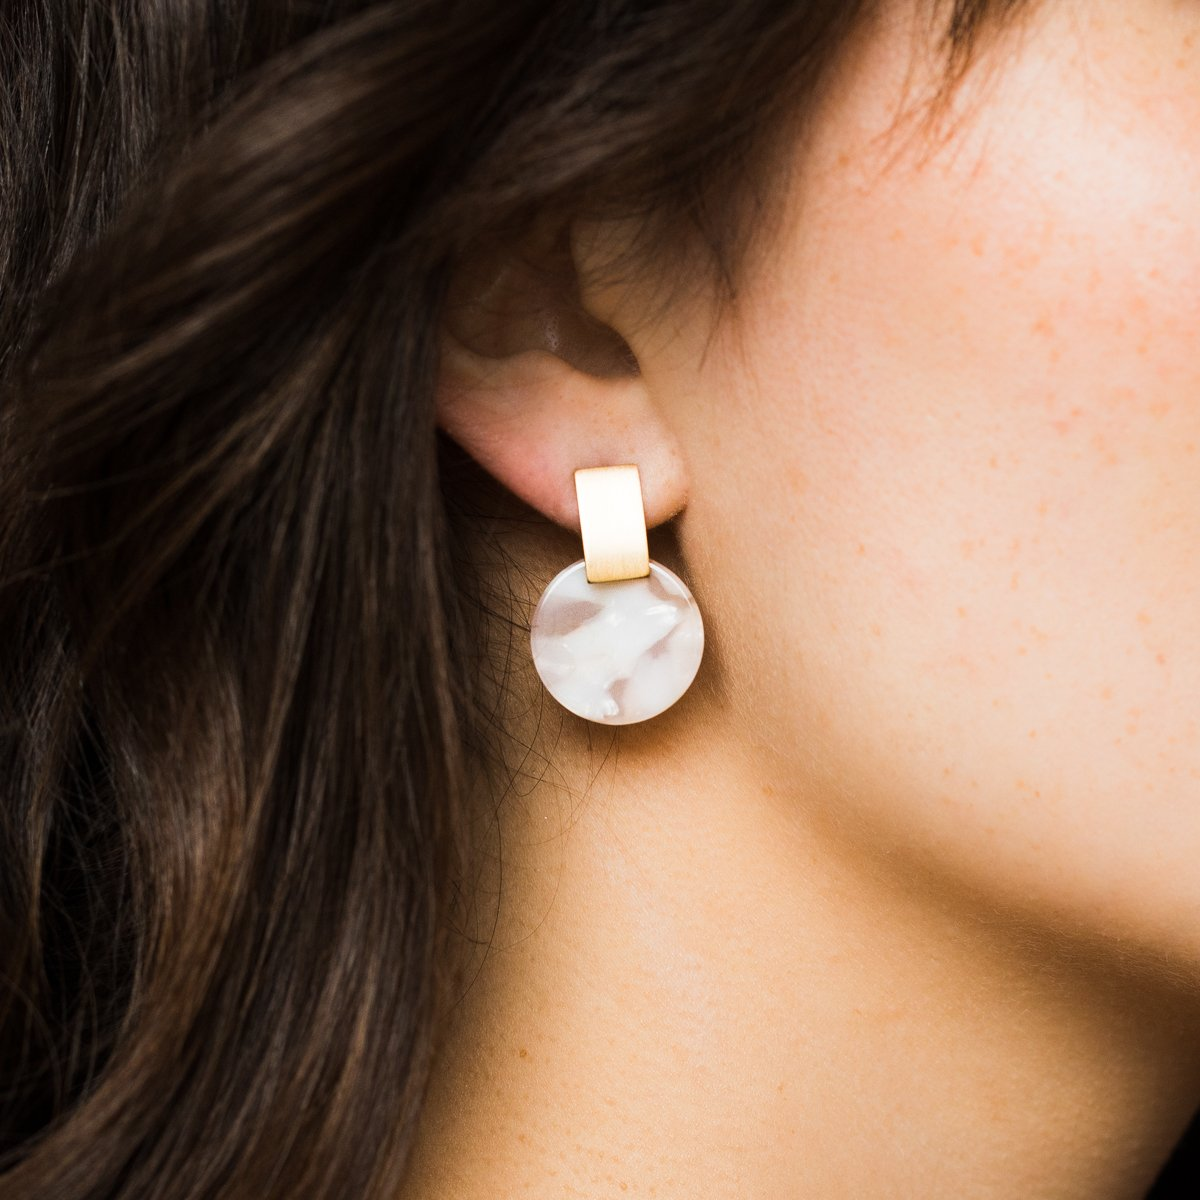 d8a4ee49ff72 Jupiter Drop Earrings in Petal - earrings - Lover s Tempo local eclectic